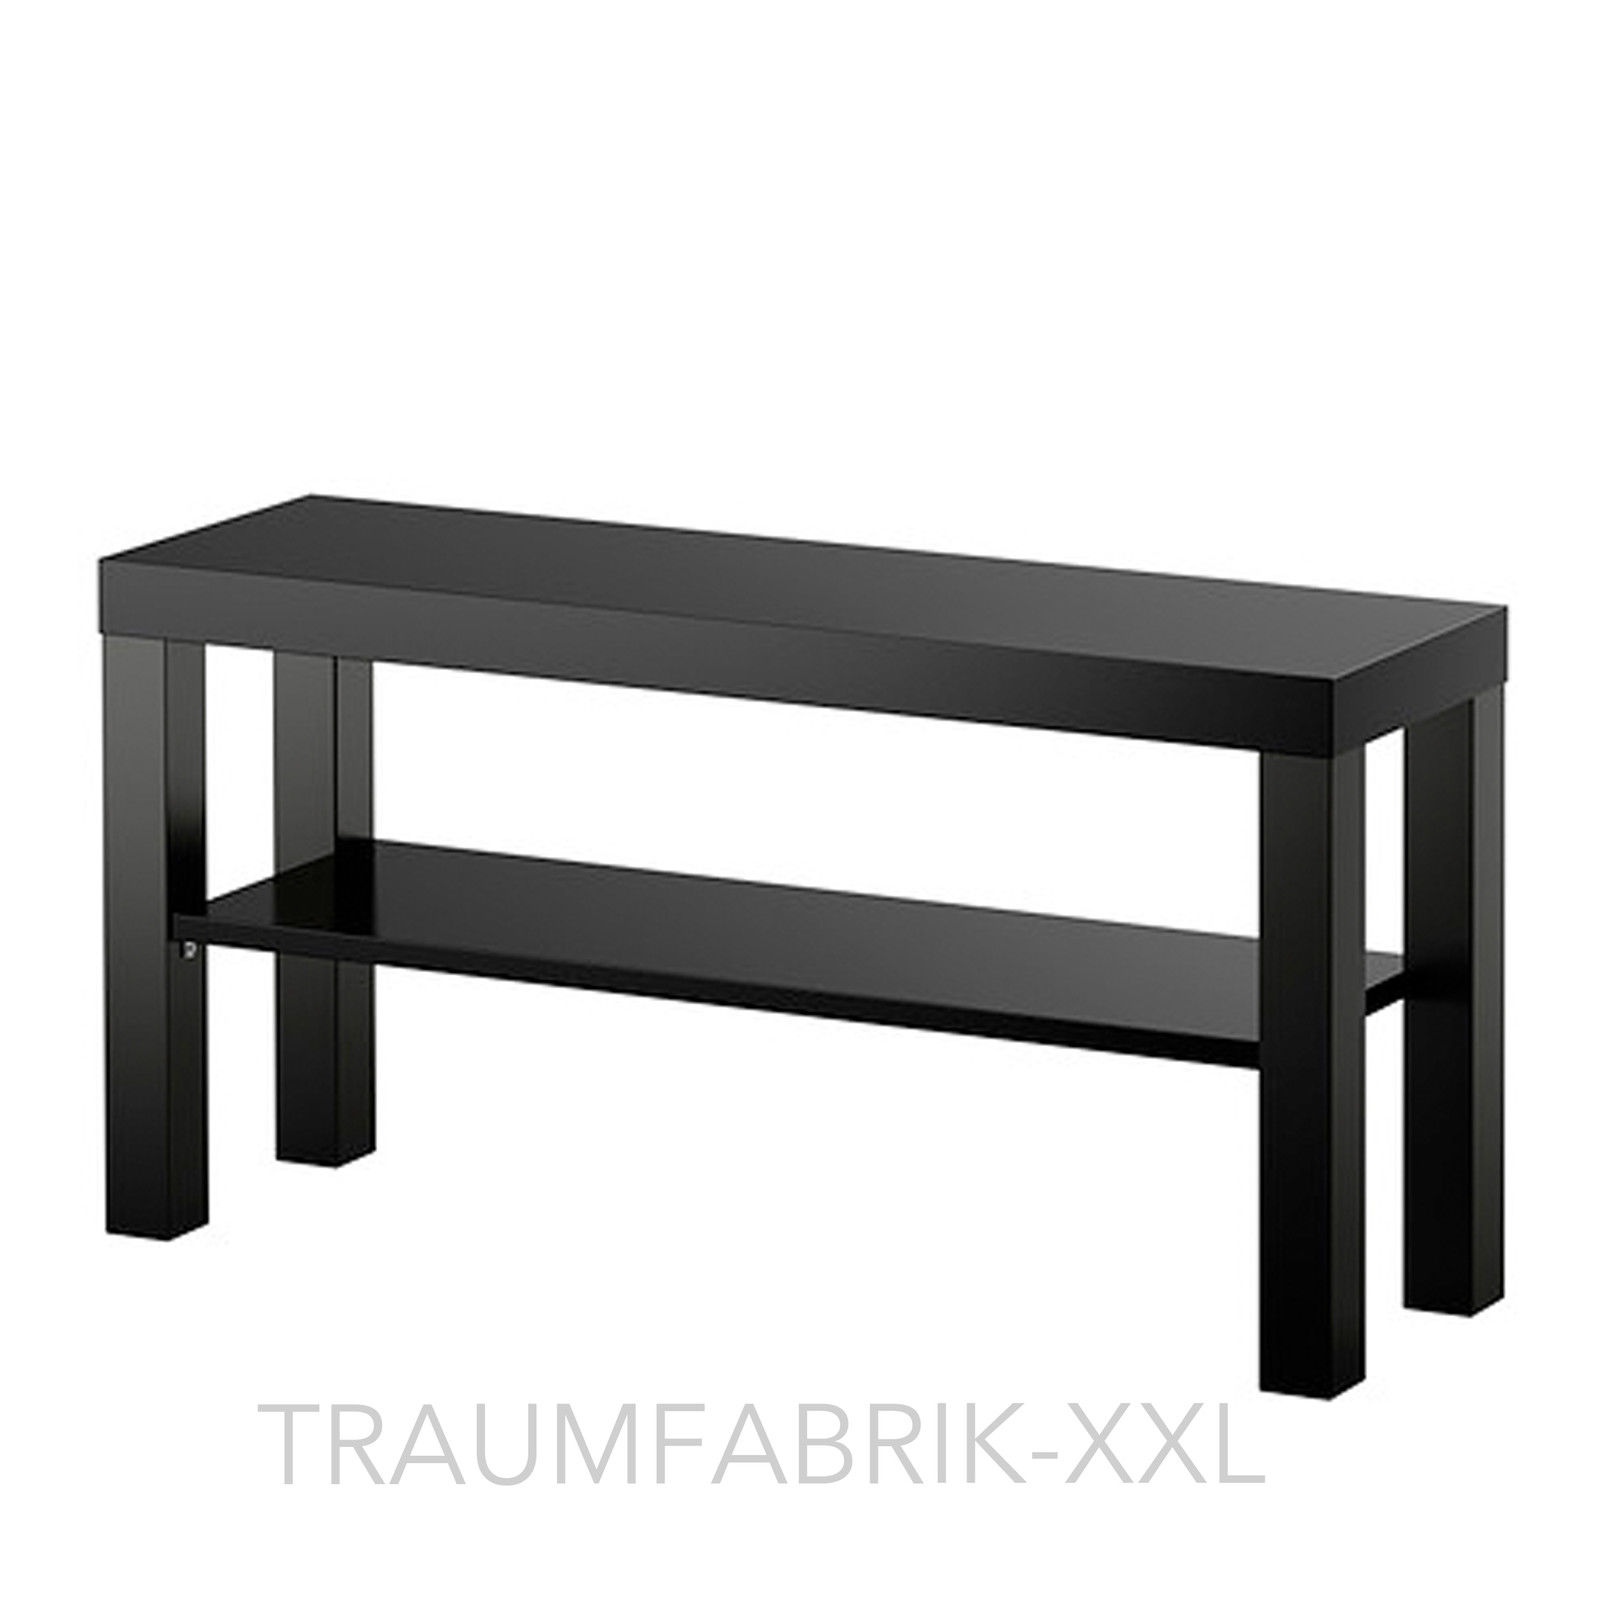 ikea lack tv bank fernsehtisch lowboard hifi regal 90 x 26 cm schwarz tv bank traumfabrik xxl. Black Bedroom Furniture Sets. Home Design Ideas